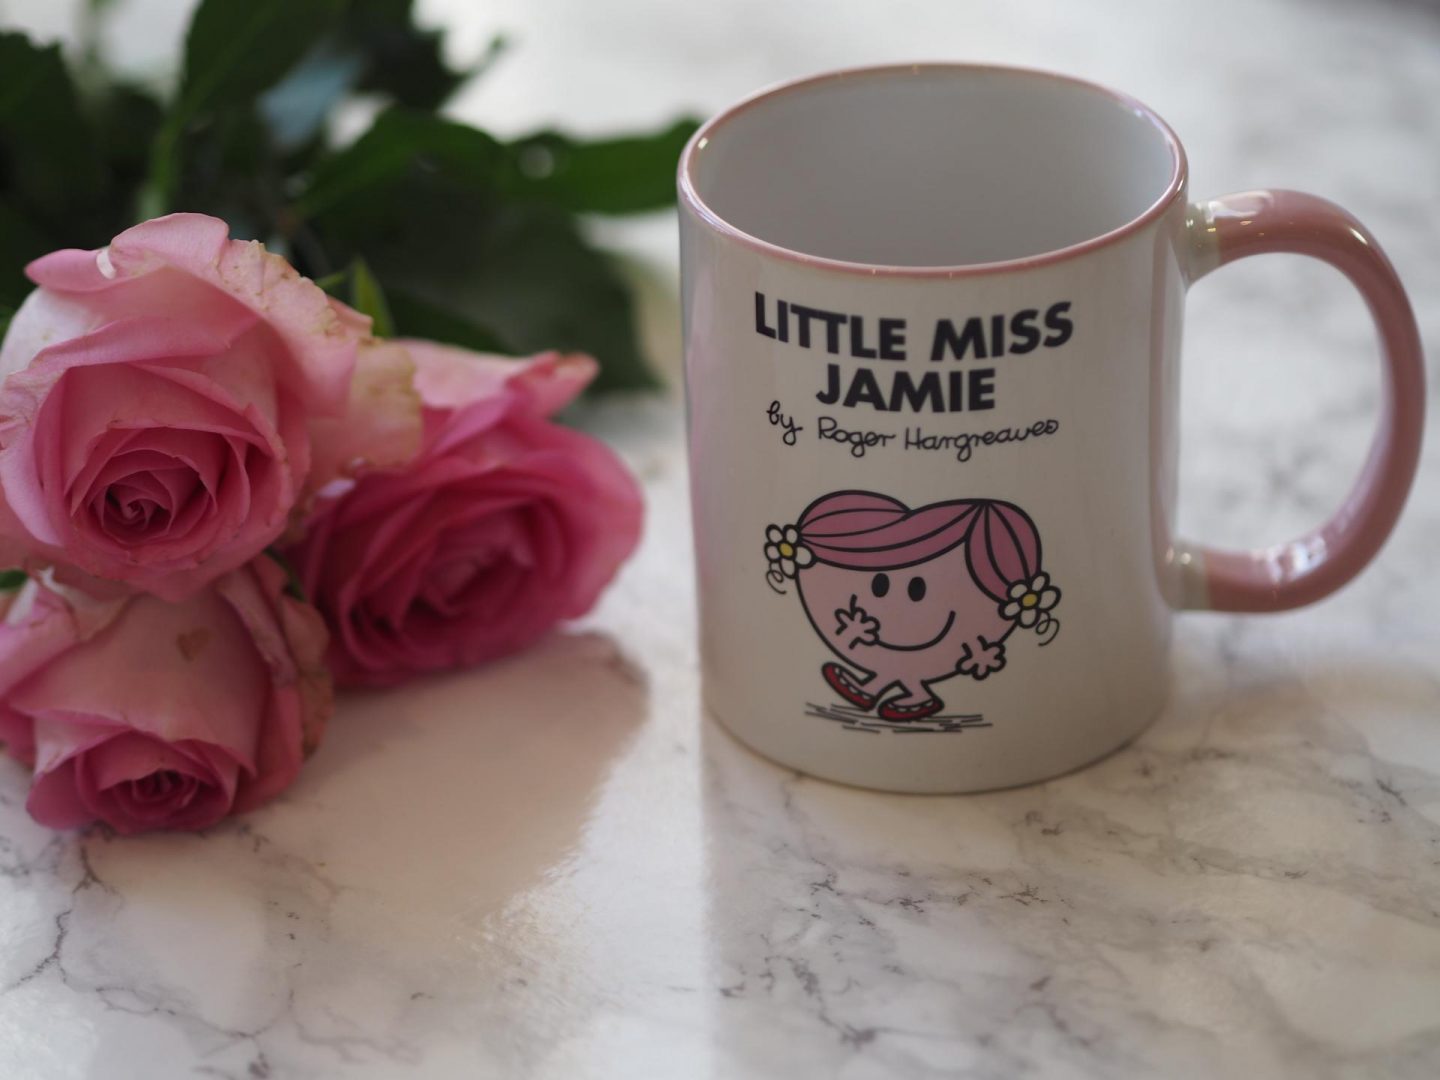 Little Miss Mug by Roger Hargreaves – Personalised